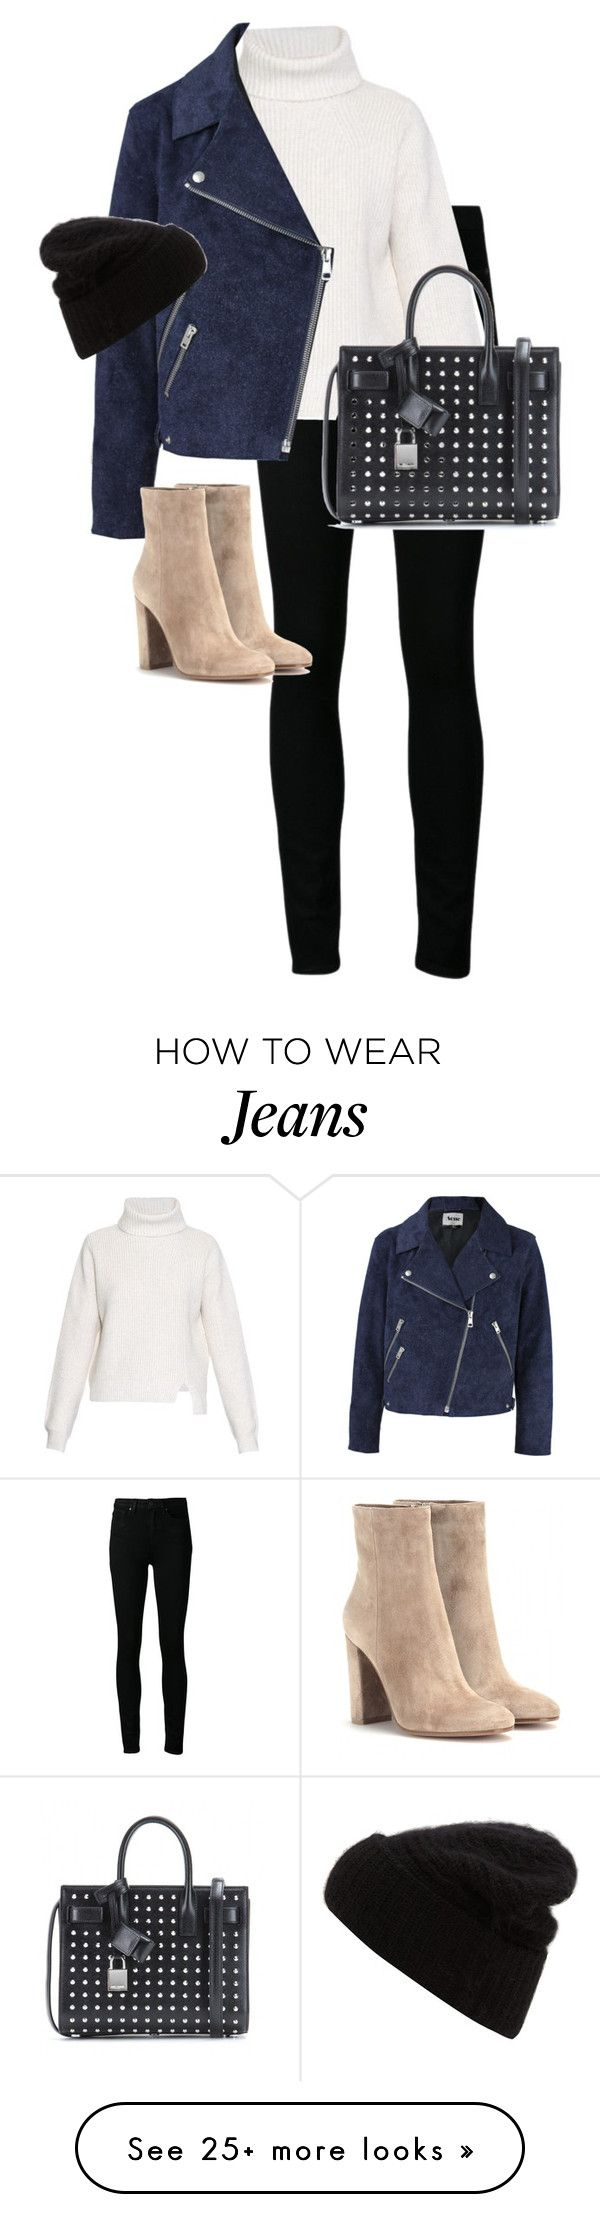 """""""Untitled #10294"""" by alexsrogers on Polyvore featuring Paige Denim, Proenza Schouler, Acne Studios, Gianvito Rossi and Yves Saint Laurent"""